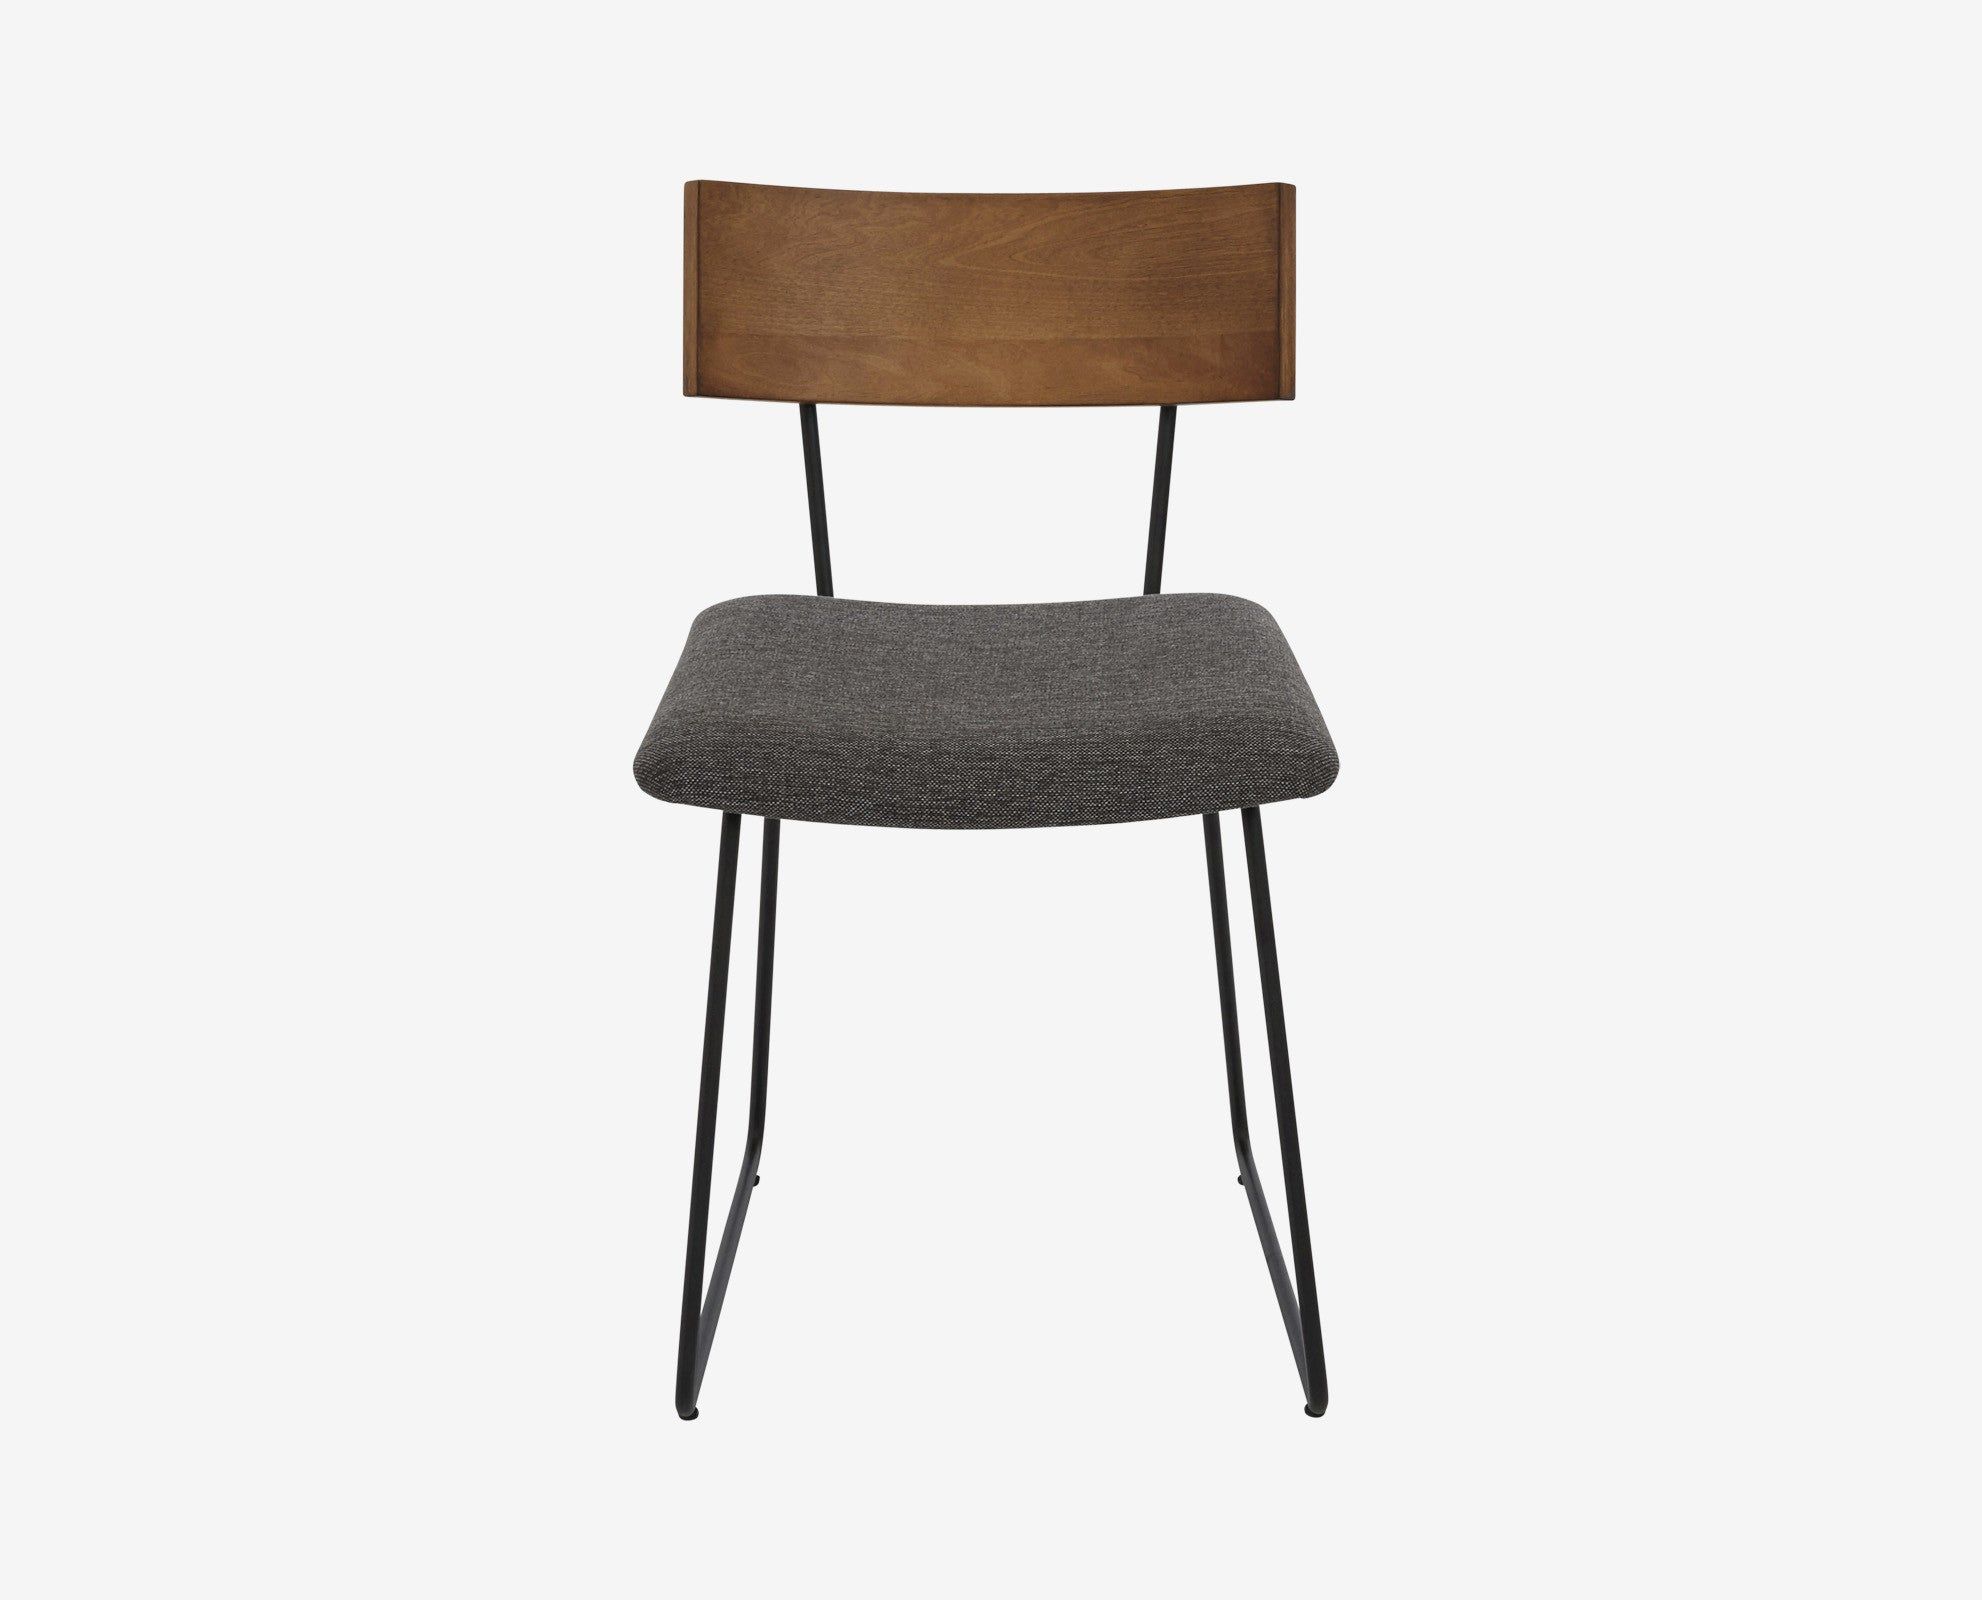 Superb Karsten Dining Chair. Rustic Industrial Dining Chair